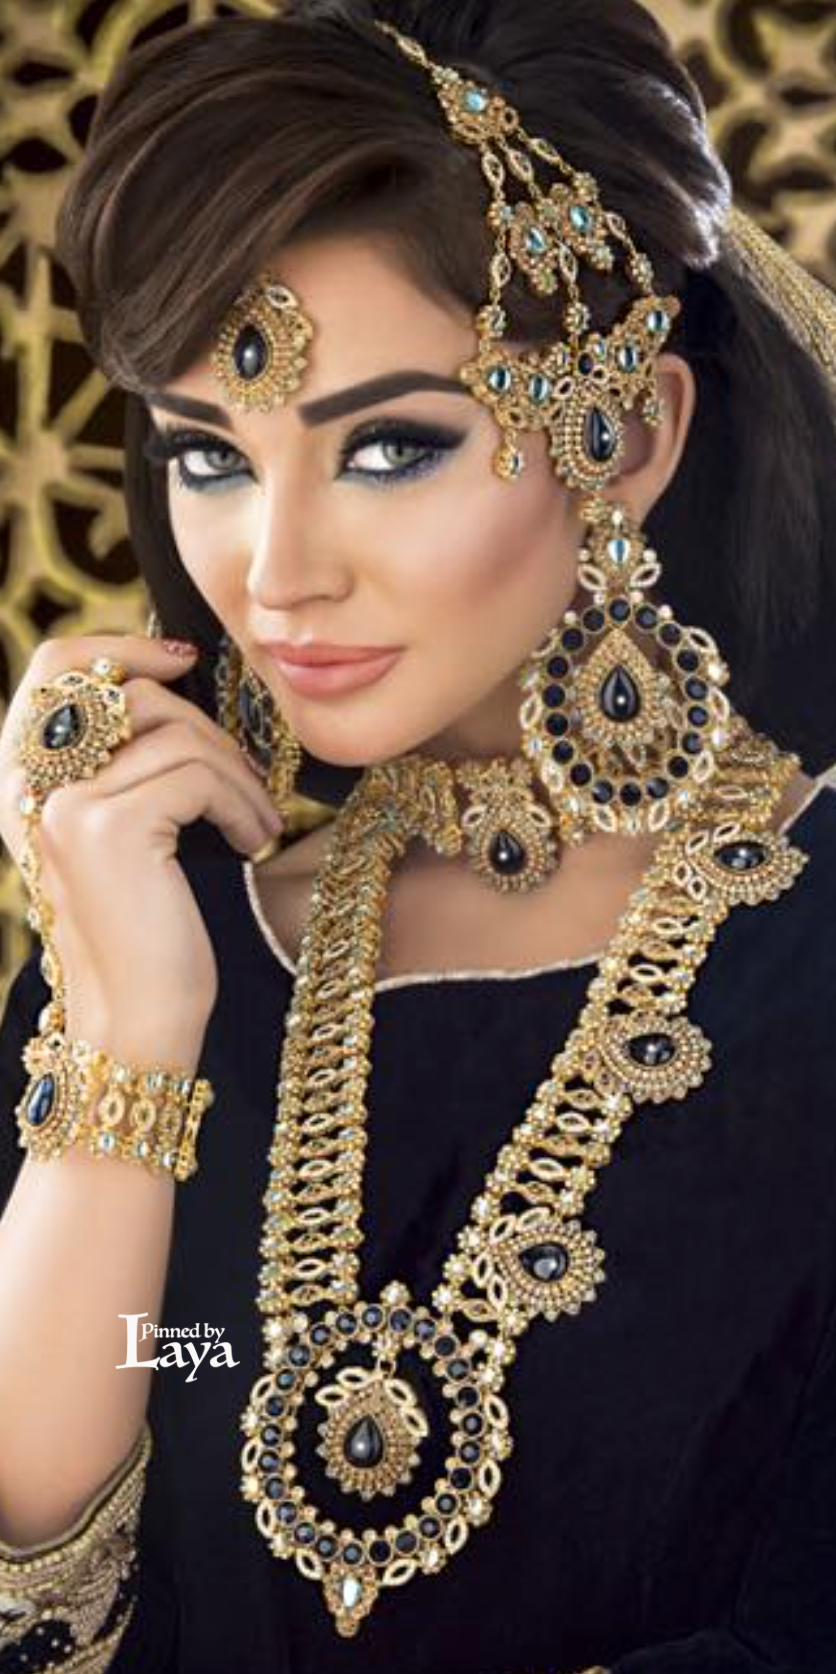 Jewels pinterest beautiful indian wedding jewellery and jewellery - Set Jhoomar Tikka Hand Bracelet With Ring Women S Jewelry Http Amzn India Weddingbride